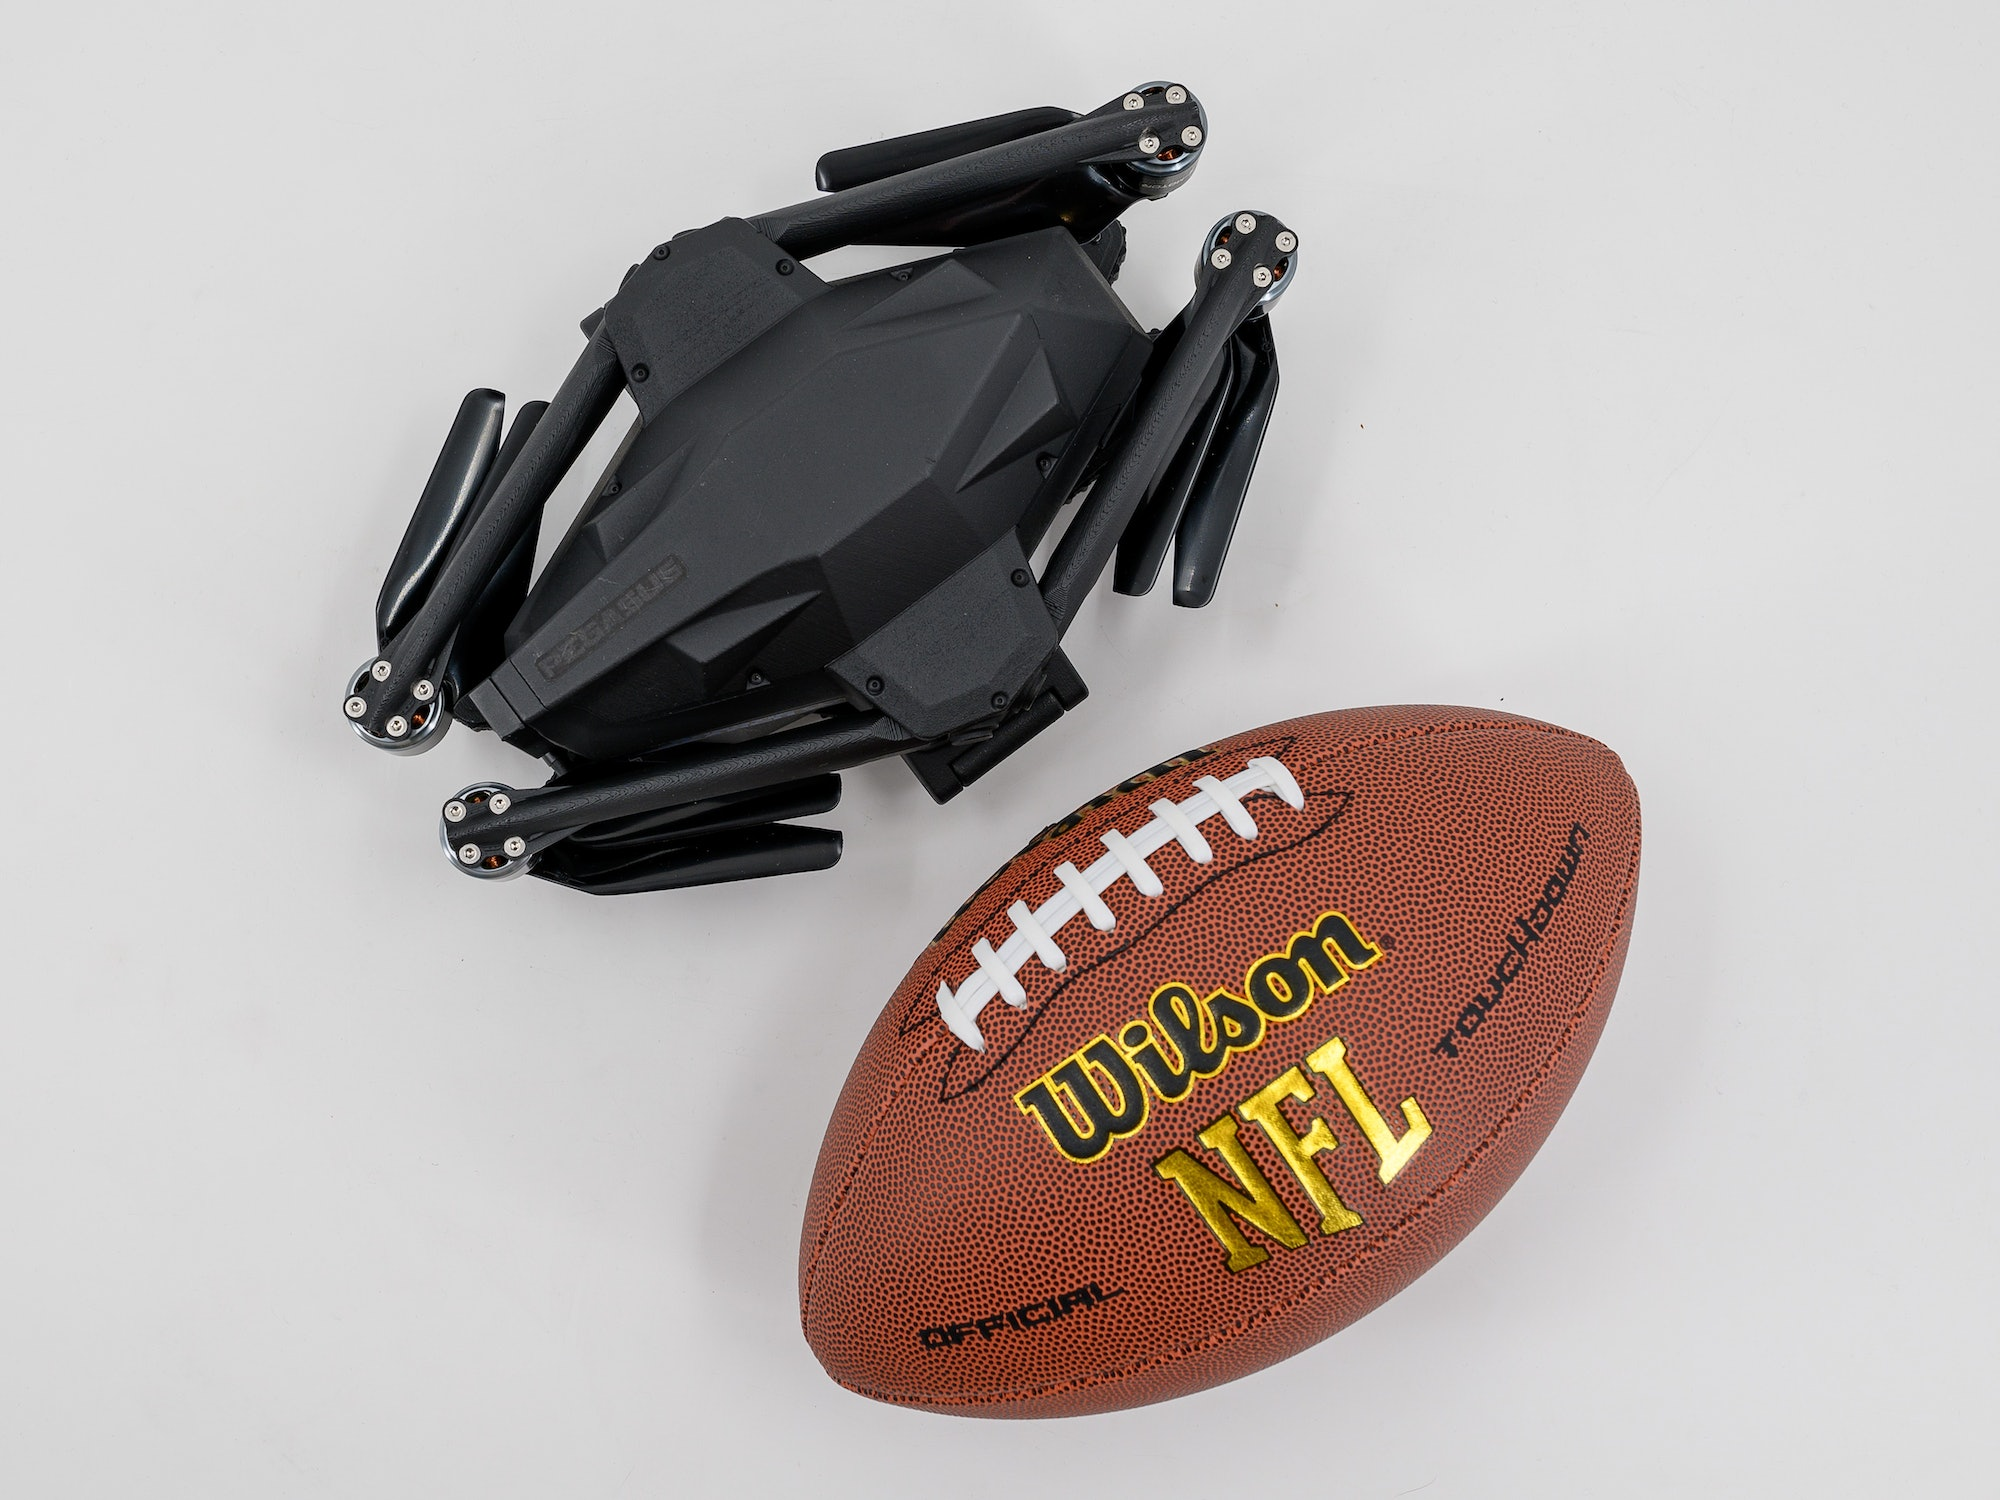 The Pegasus Mini is about the same size as an American football.